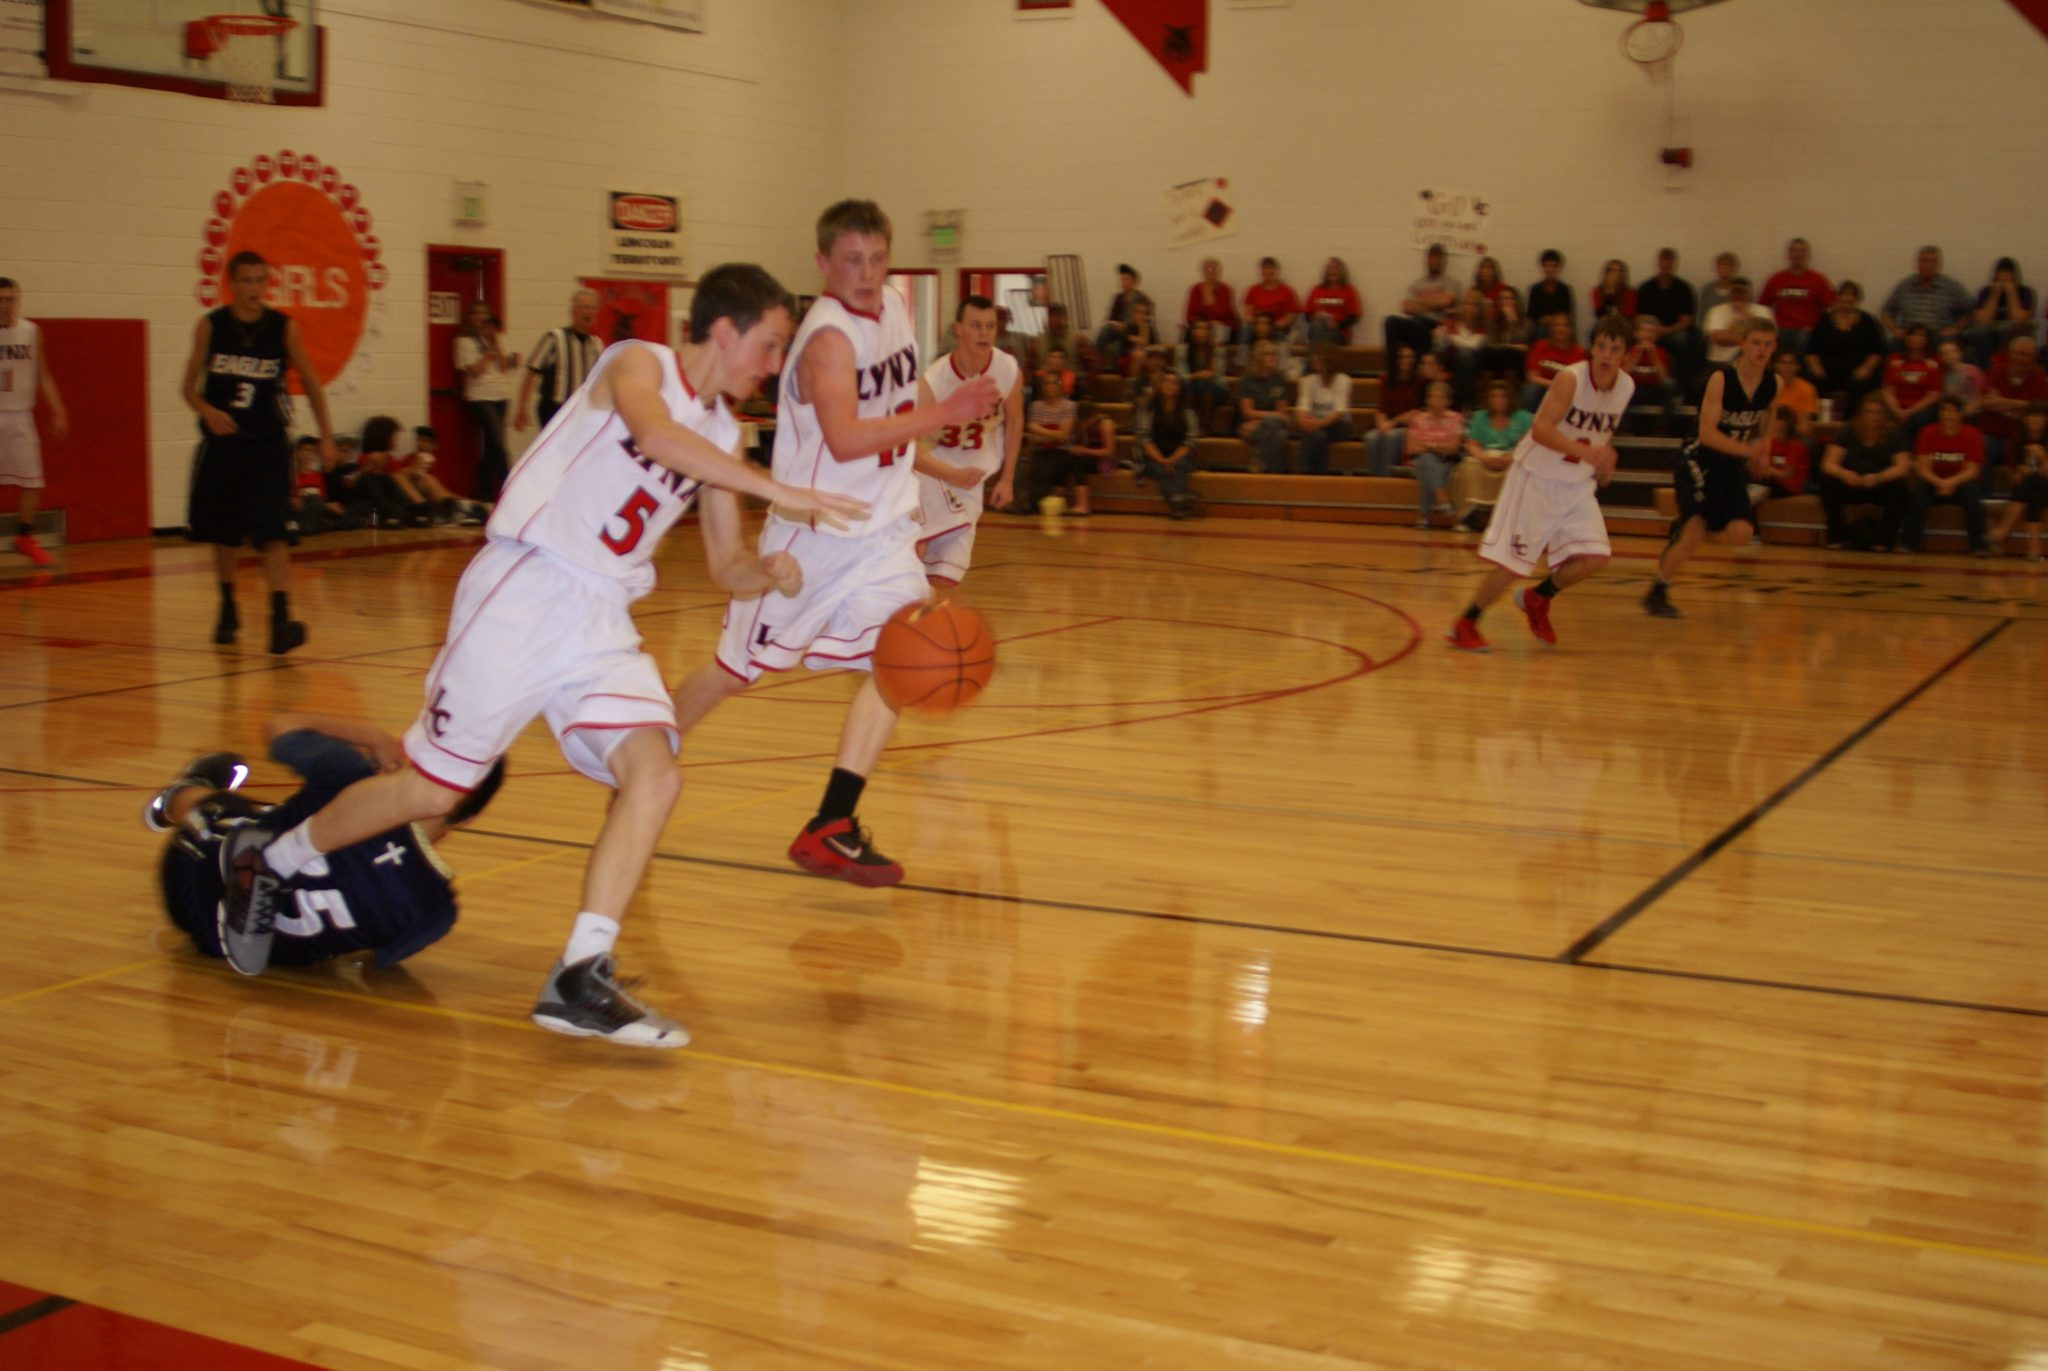 Lincoln boys get win over Lake Mead, fall to Meadows